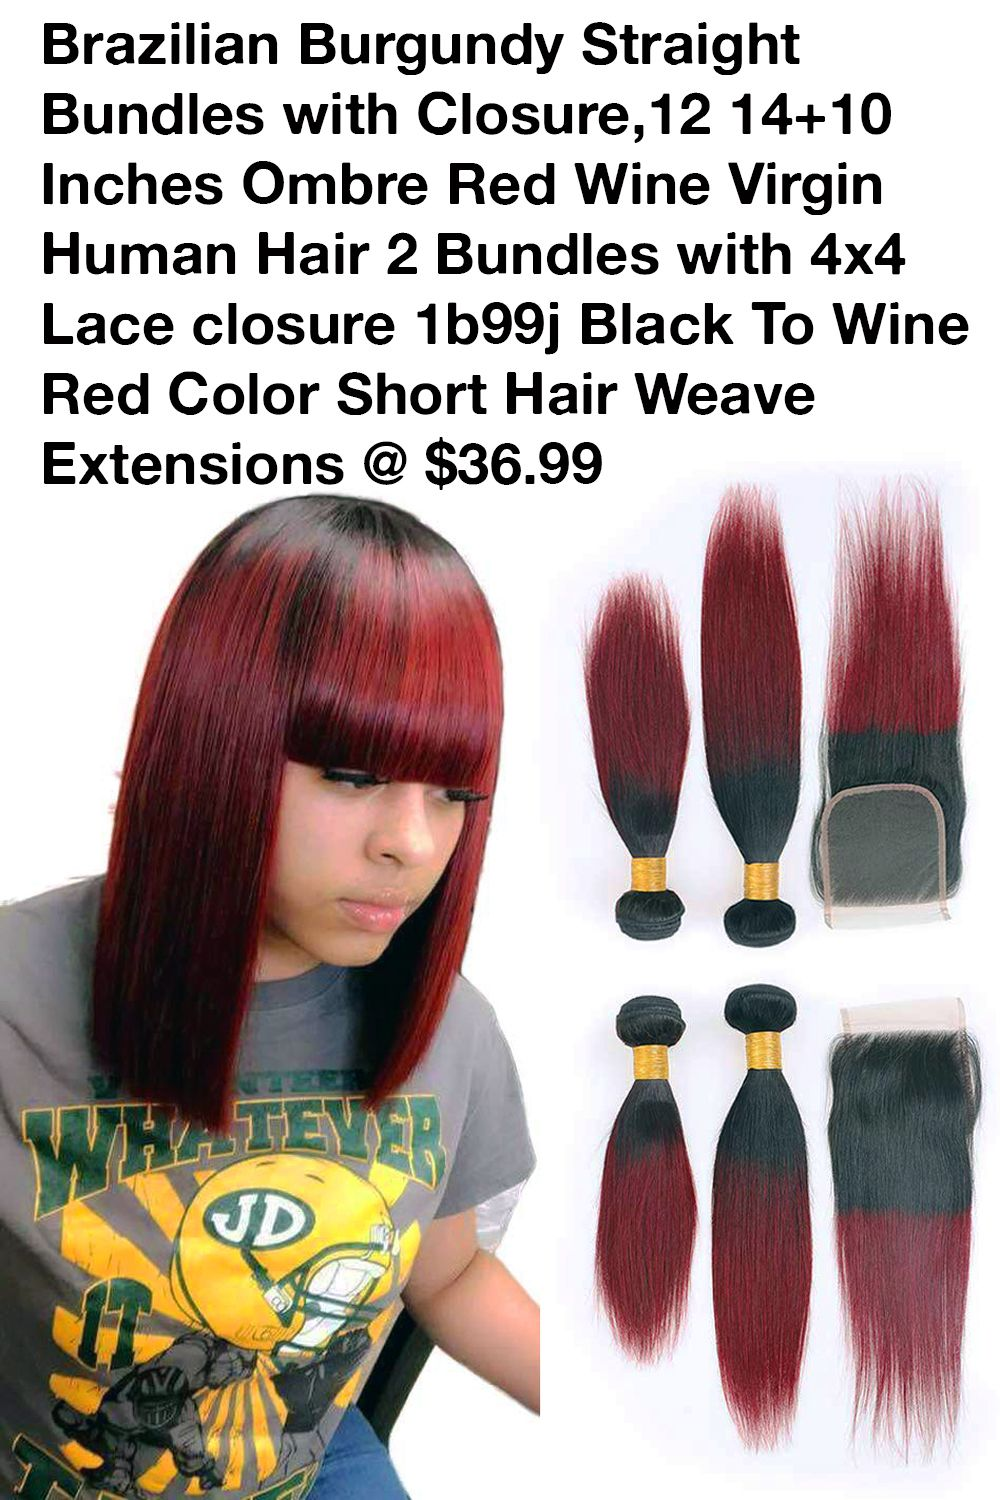 Brazilian Burgundy Straight Bundles 12 14 10 Inches Red Wine Virgin Short Hair Extensio In 2020 Hair Extensions For Short Hair Short Hair Styles Brazilian Hair Bundles